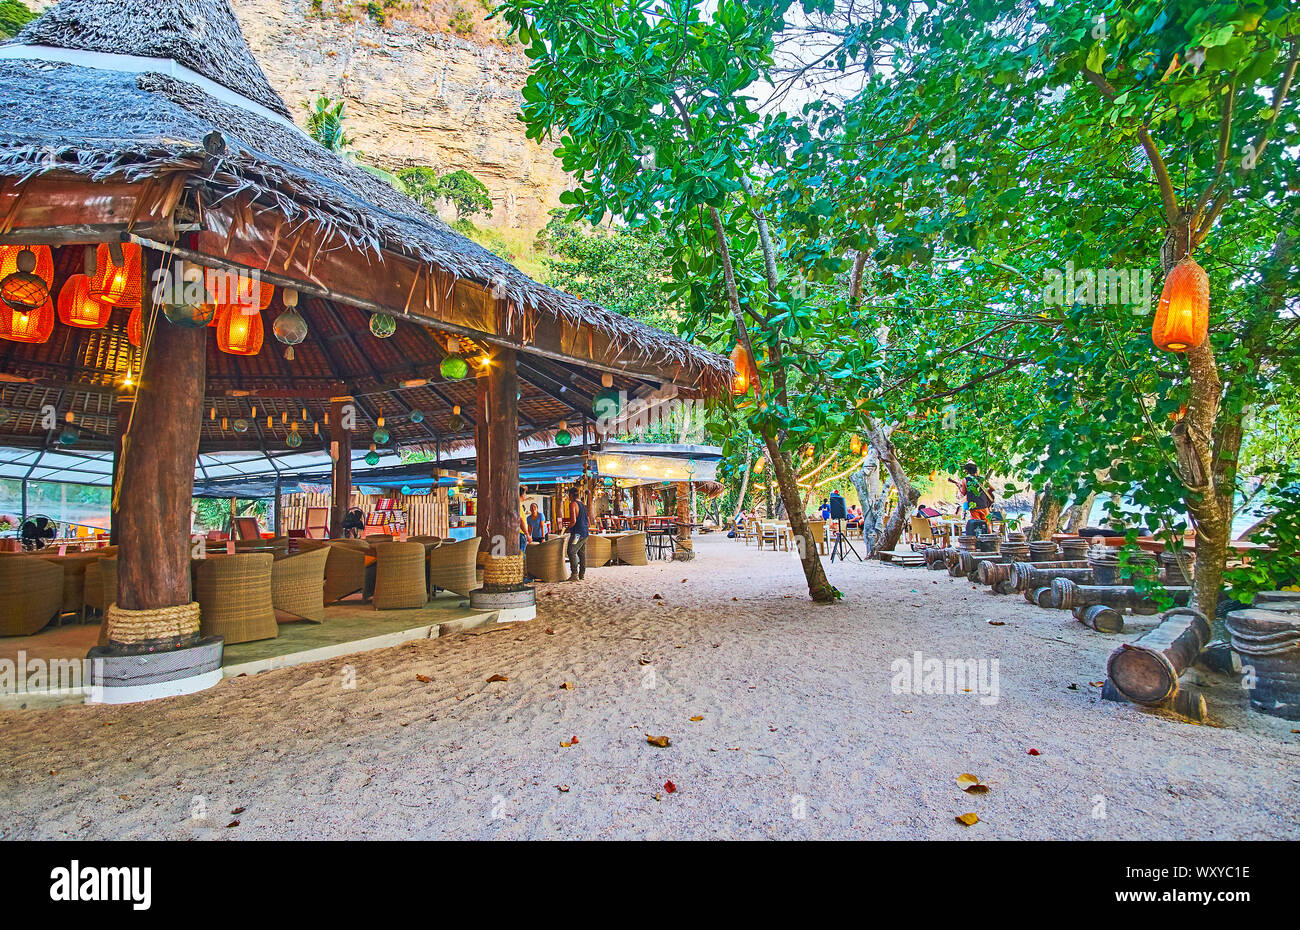 AO NANG, THAILAND - APRIL 25, 2019: The beach bar in wooden hut is decorated with many lanterns, making it cozy and romantic, on April 25 in Ao Nang Stock Photo